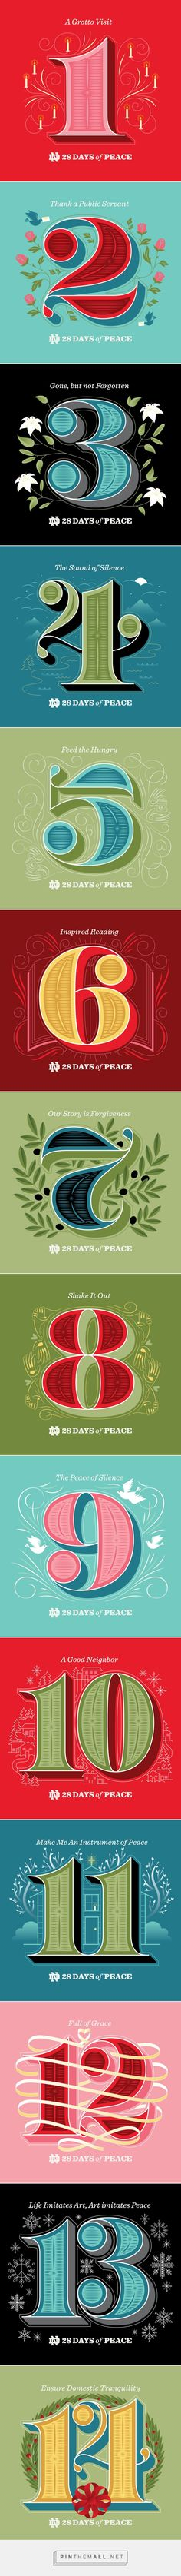 Jessica Hische - 28 Days of Peace - created via https://pinthemall.net